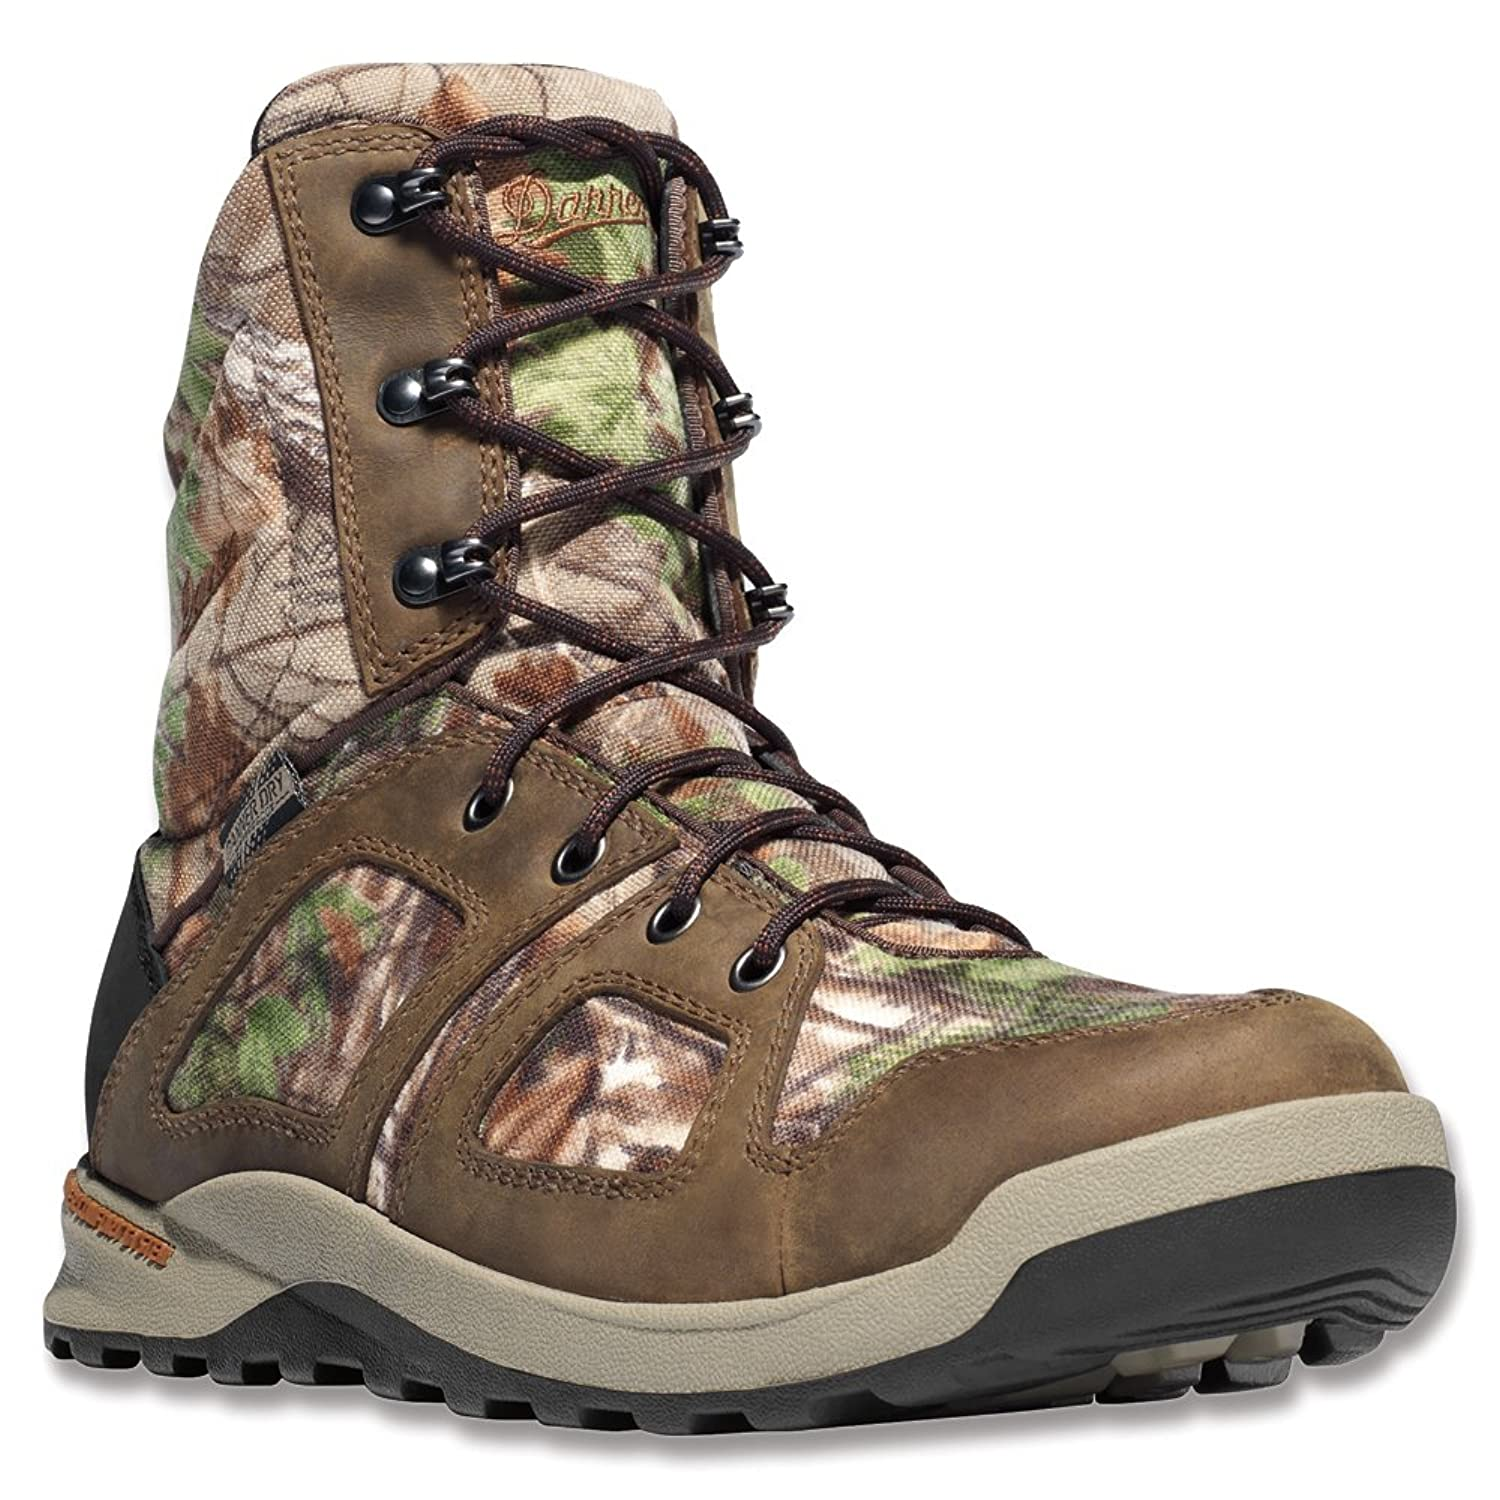 48065 Danner Men's Steadfast 8IN Hunting Boots - Realtree Xtra